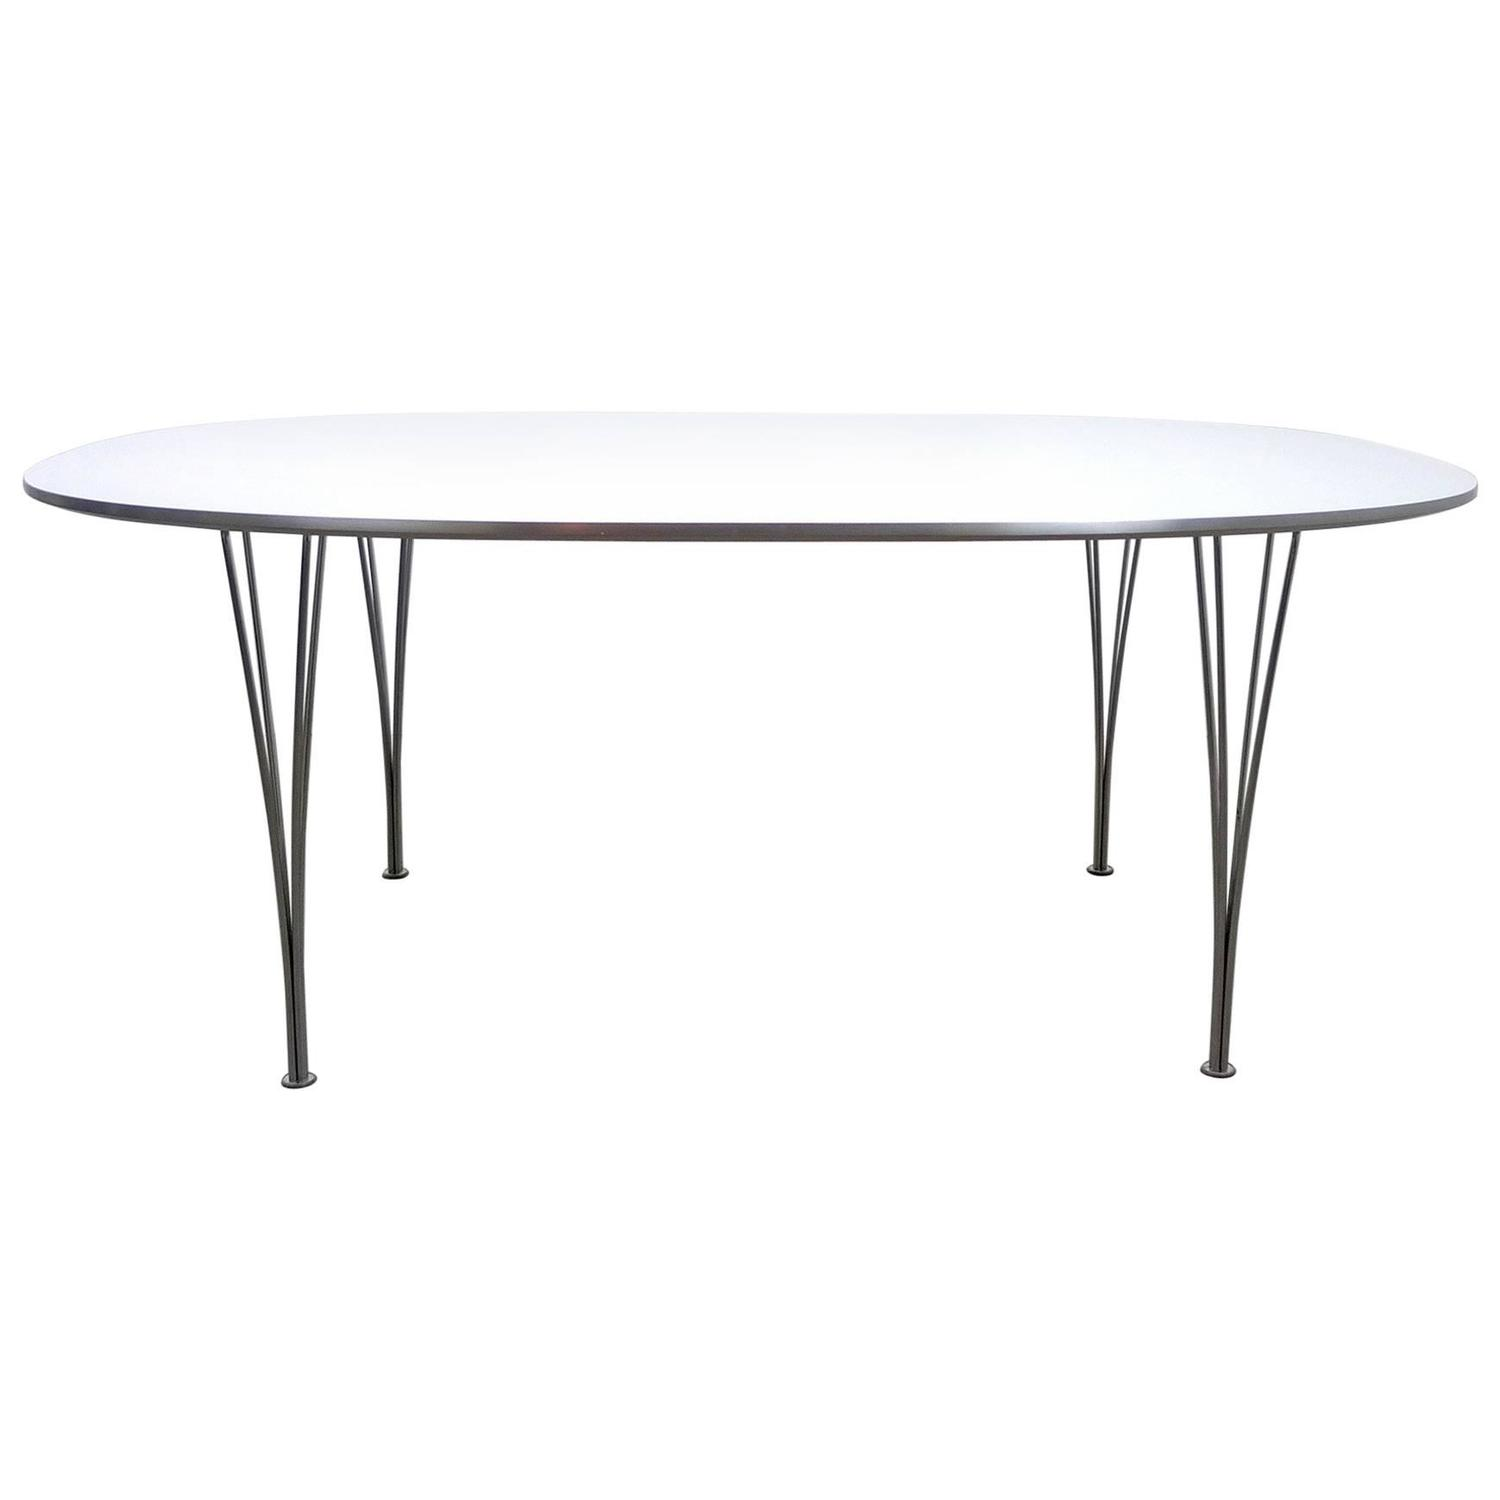 U0027Super Circleu0027 Conference Or Dining Table By Piet Hein For Sale At 1stdibs